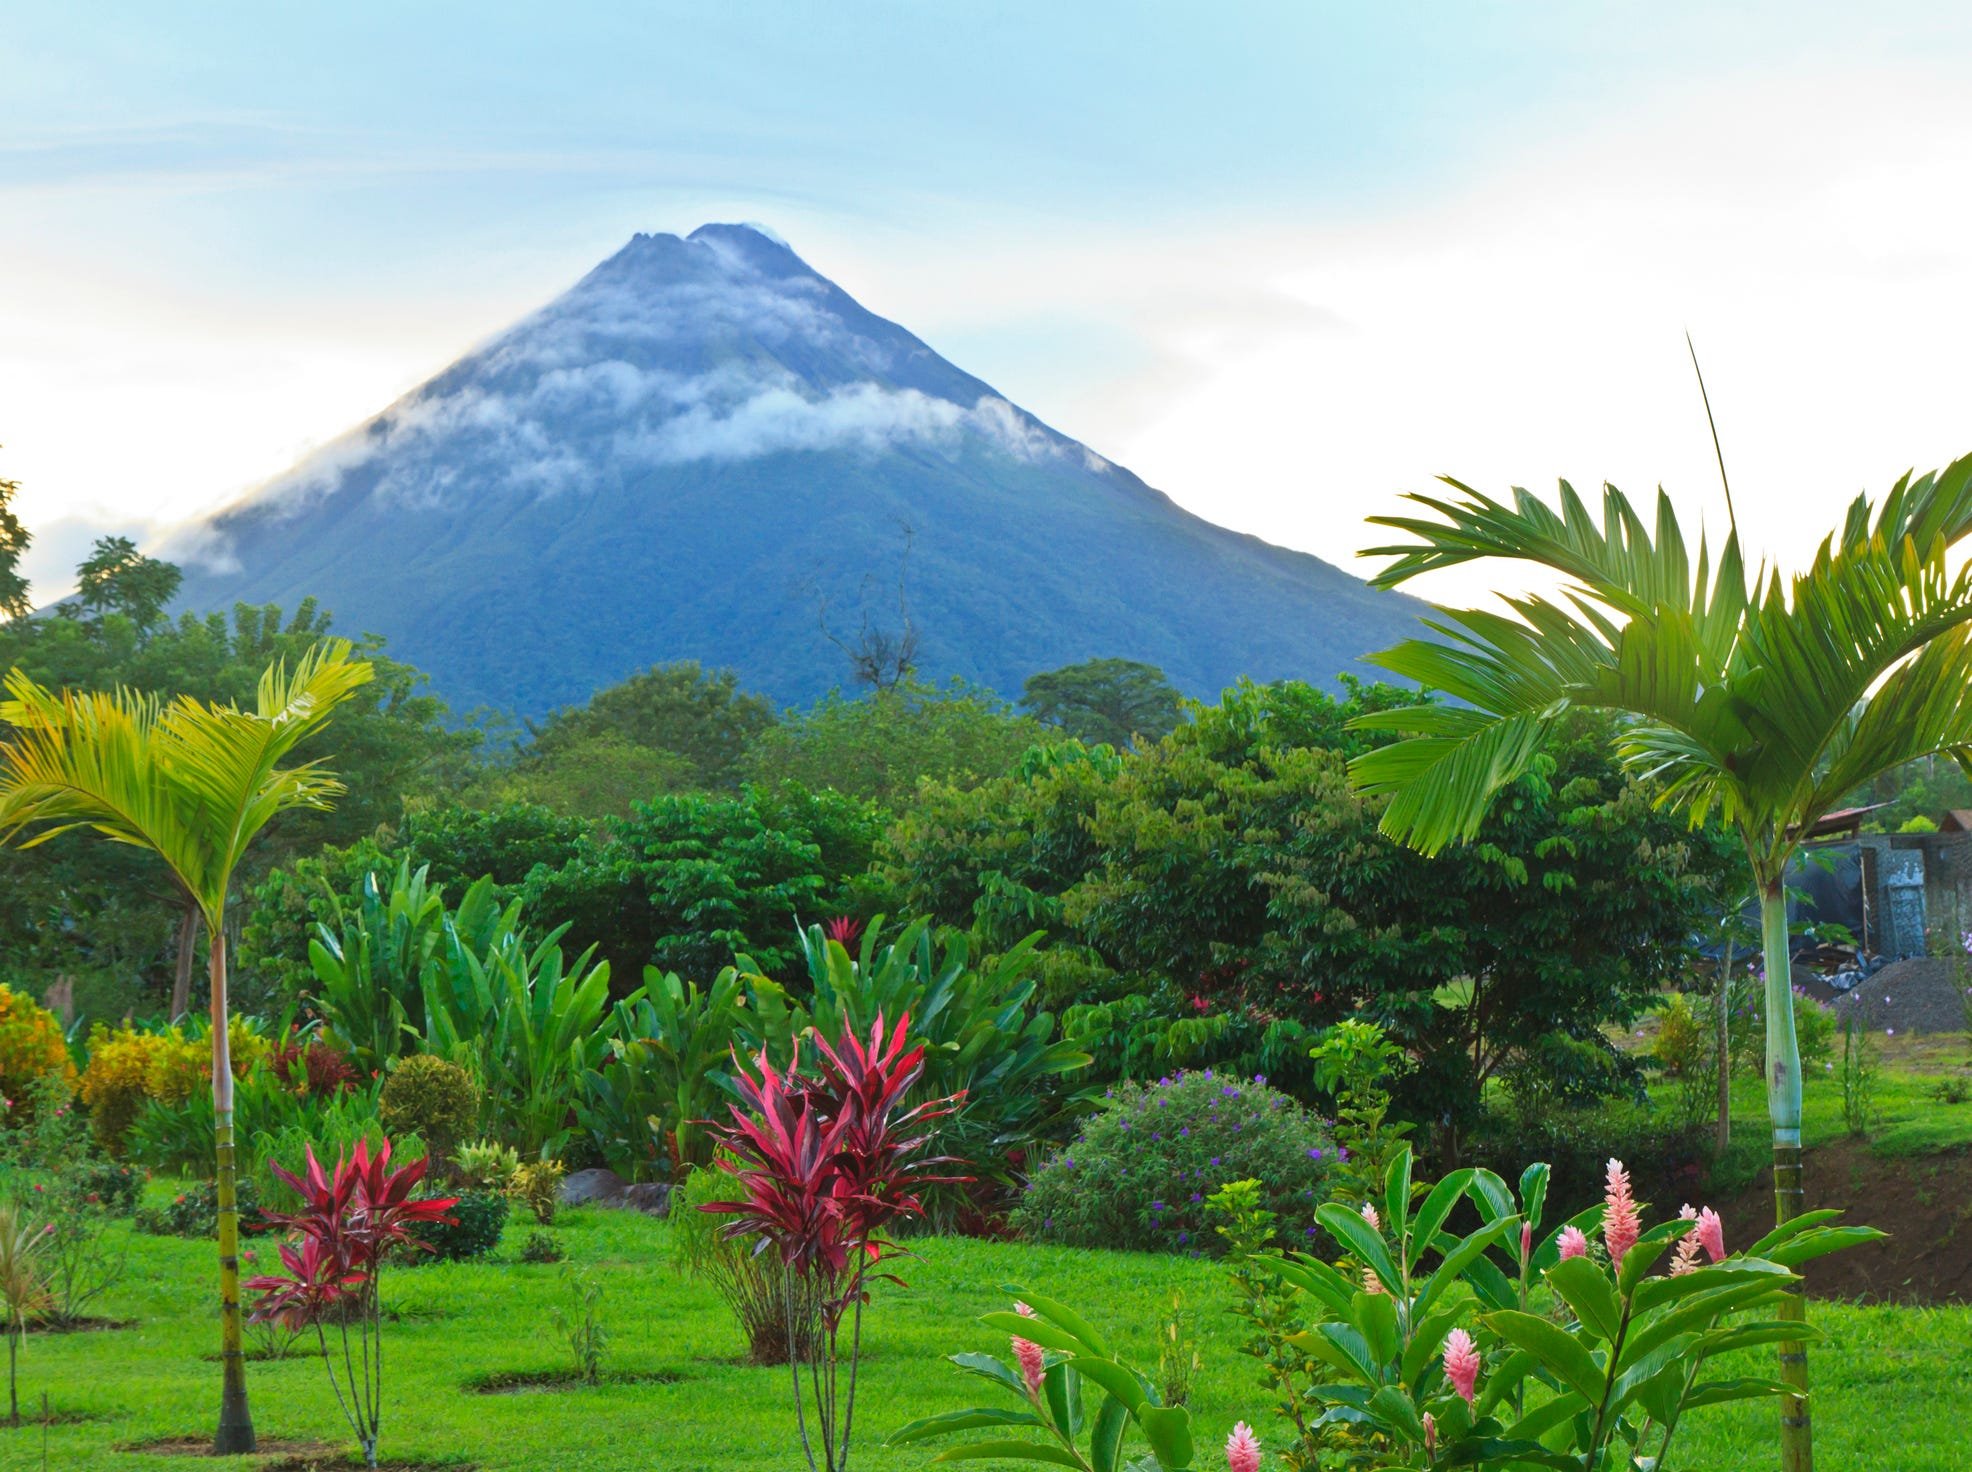 A lush garden in La Fortuna, Costa Rica with Arenal Volcano in the background.  Colin Young, Getty Images/ iStockphoto (Via OlyDrop)